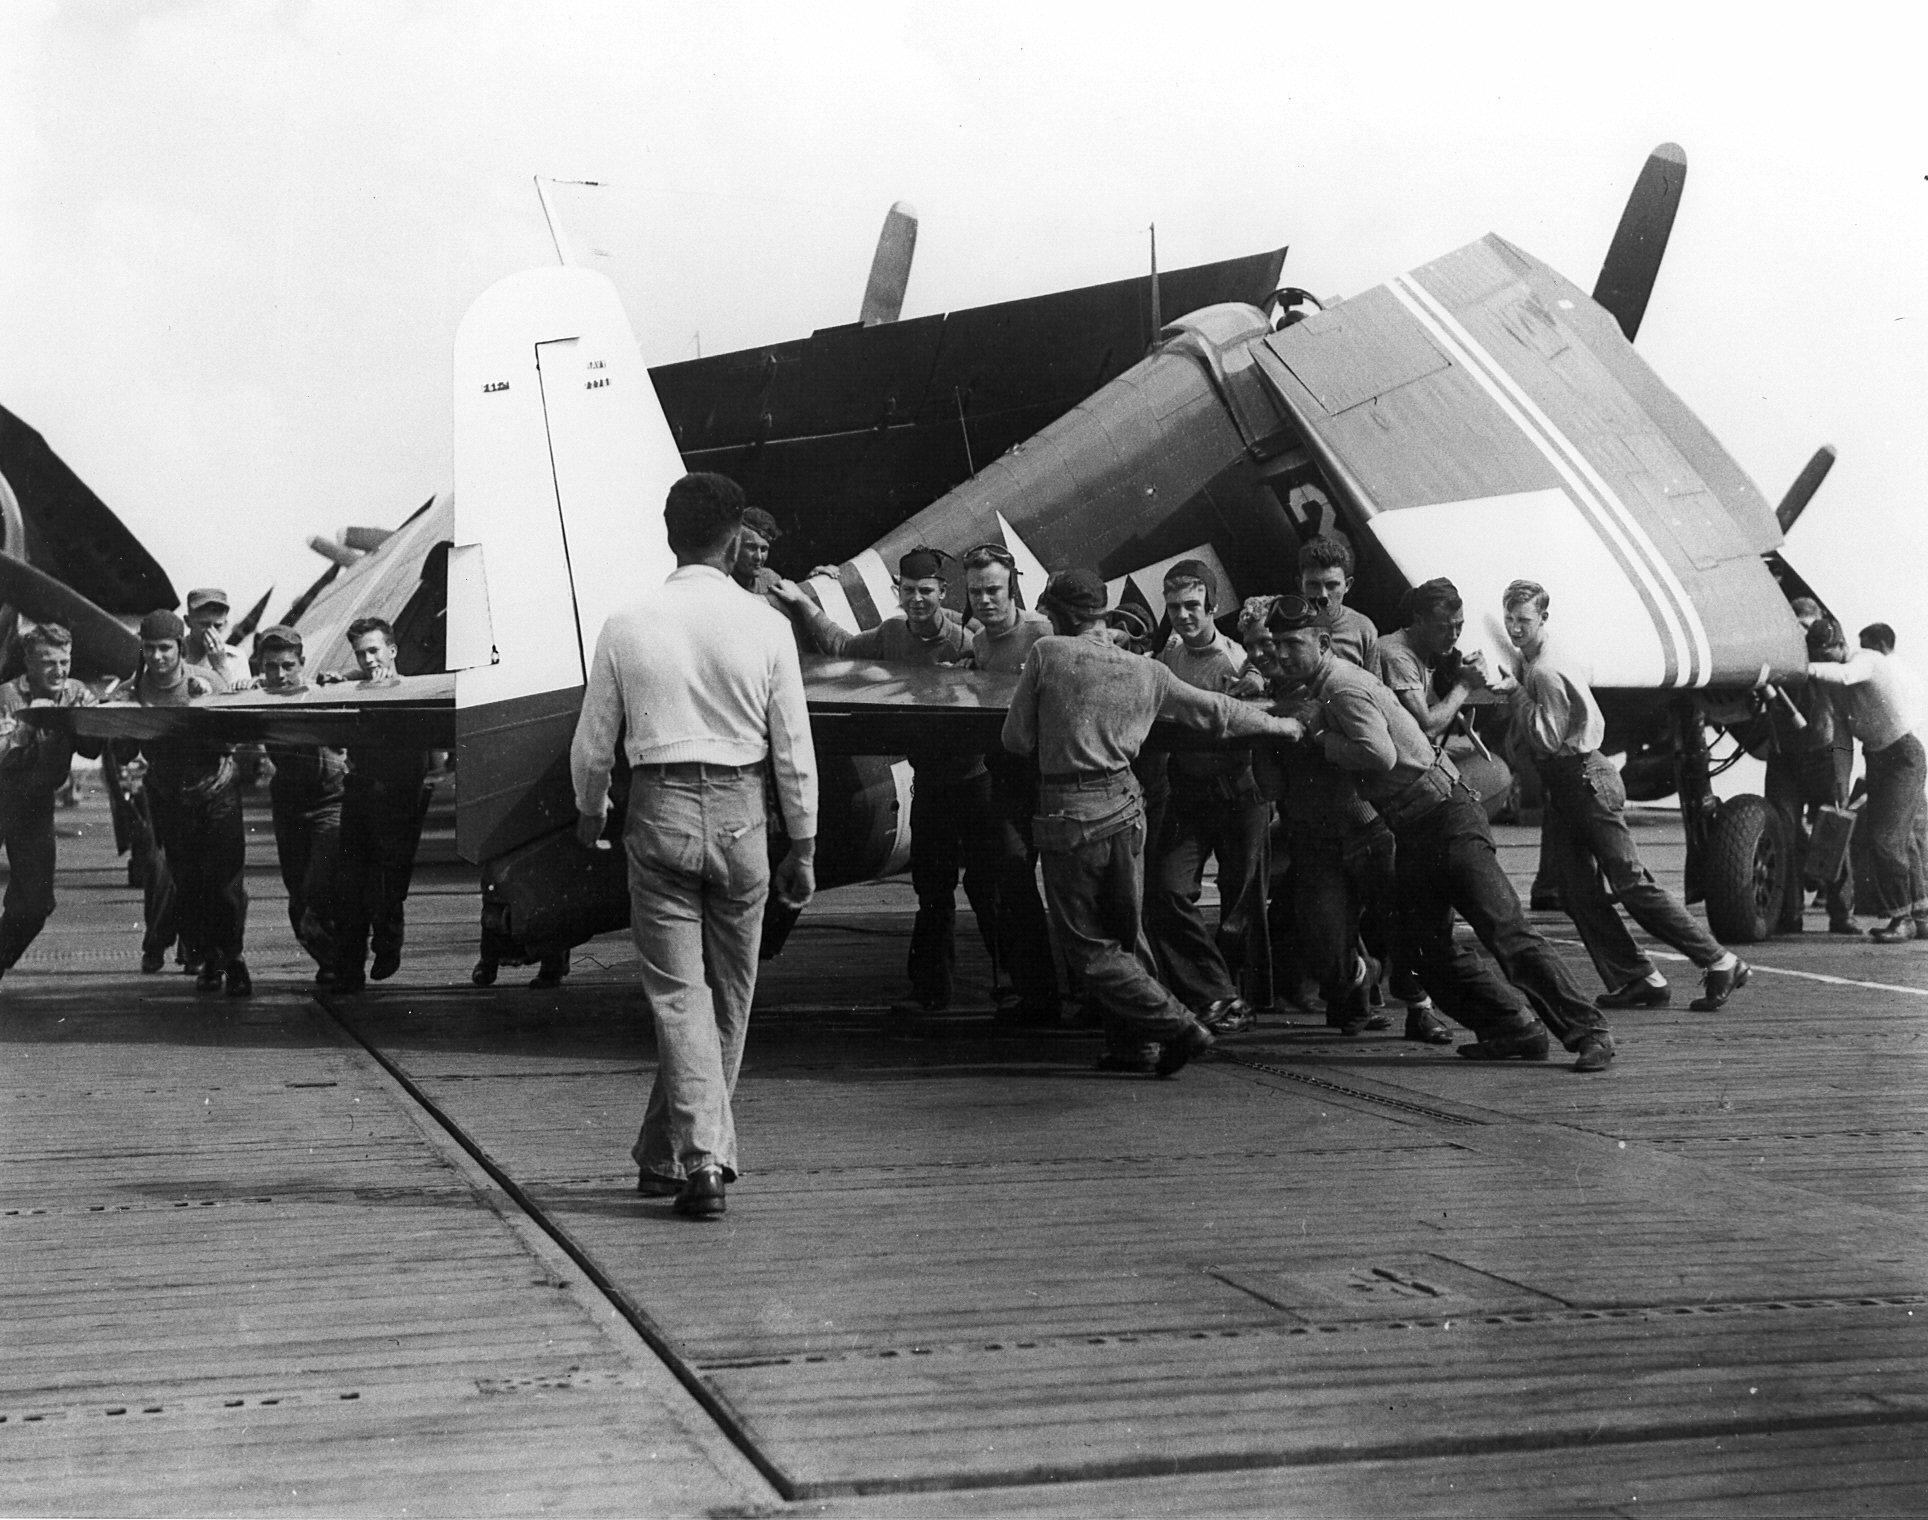 Grumman F6F 5 Hellcat VF 40 White D3 preparing for launch CVE 27 USS Suwanee Aug 1945 01